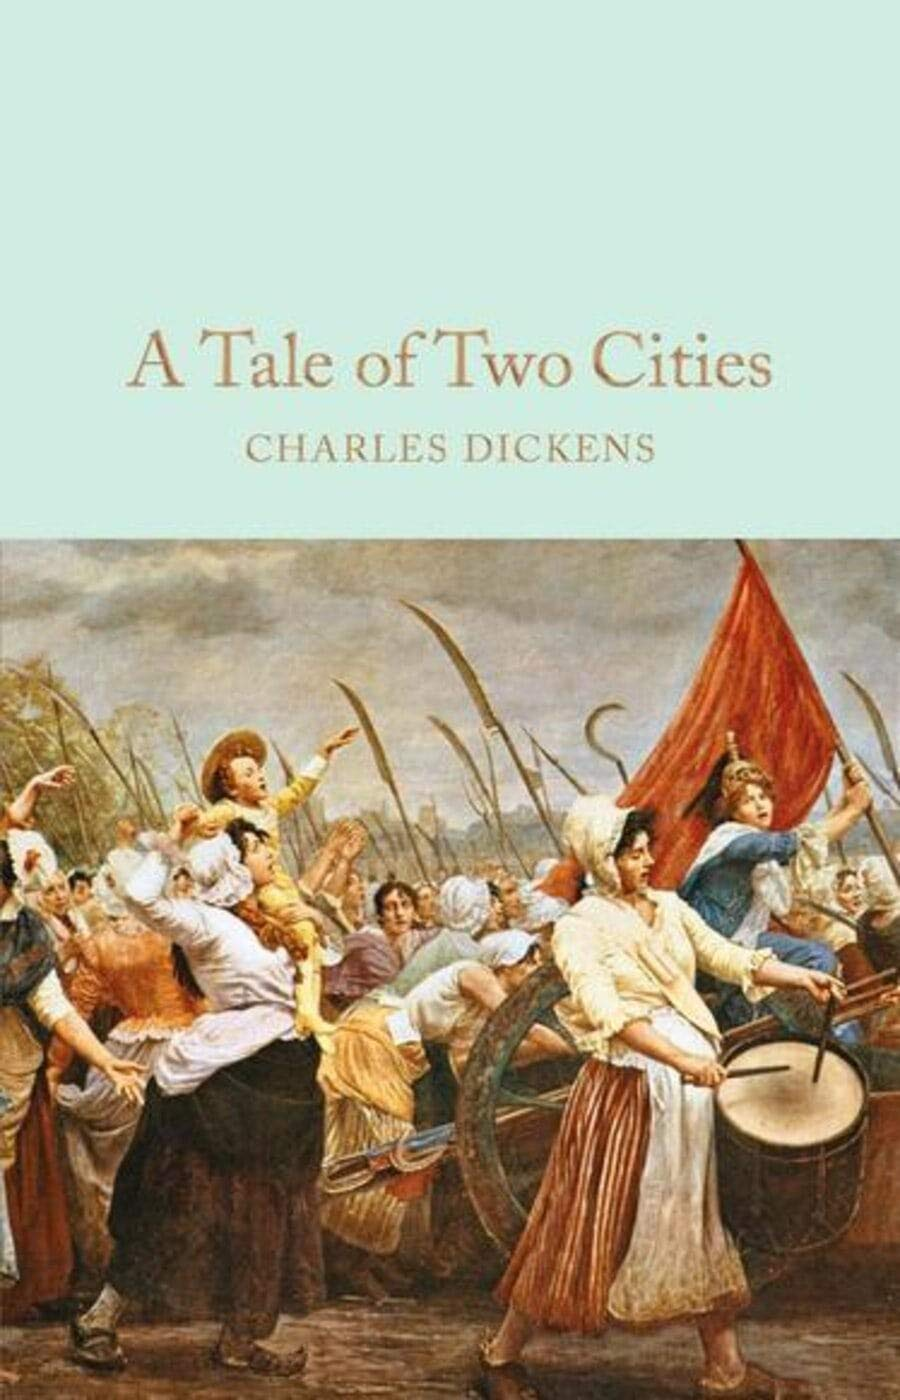 A TALE OF TWO CITIES/ CHARLES DICKENS: ANNOTATED